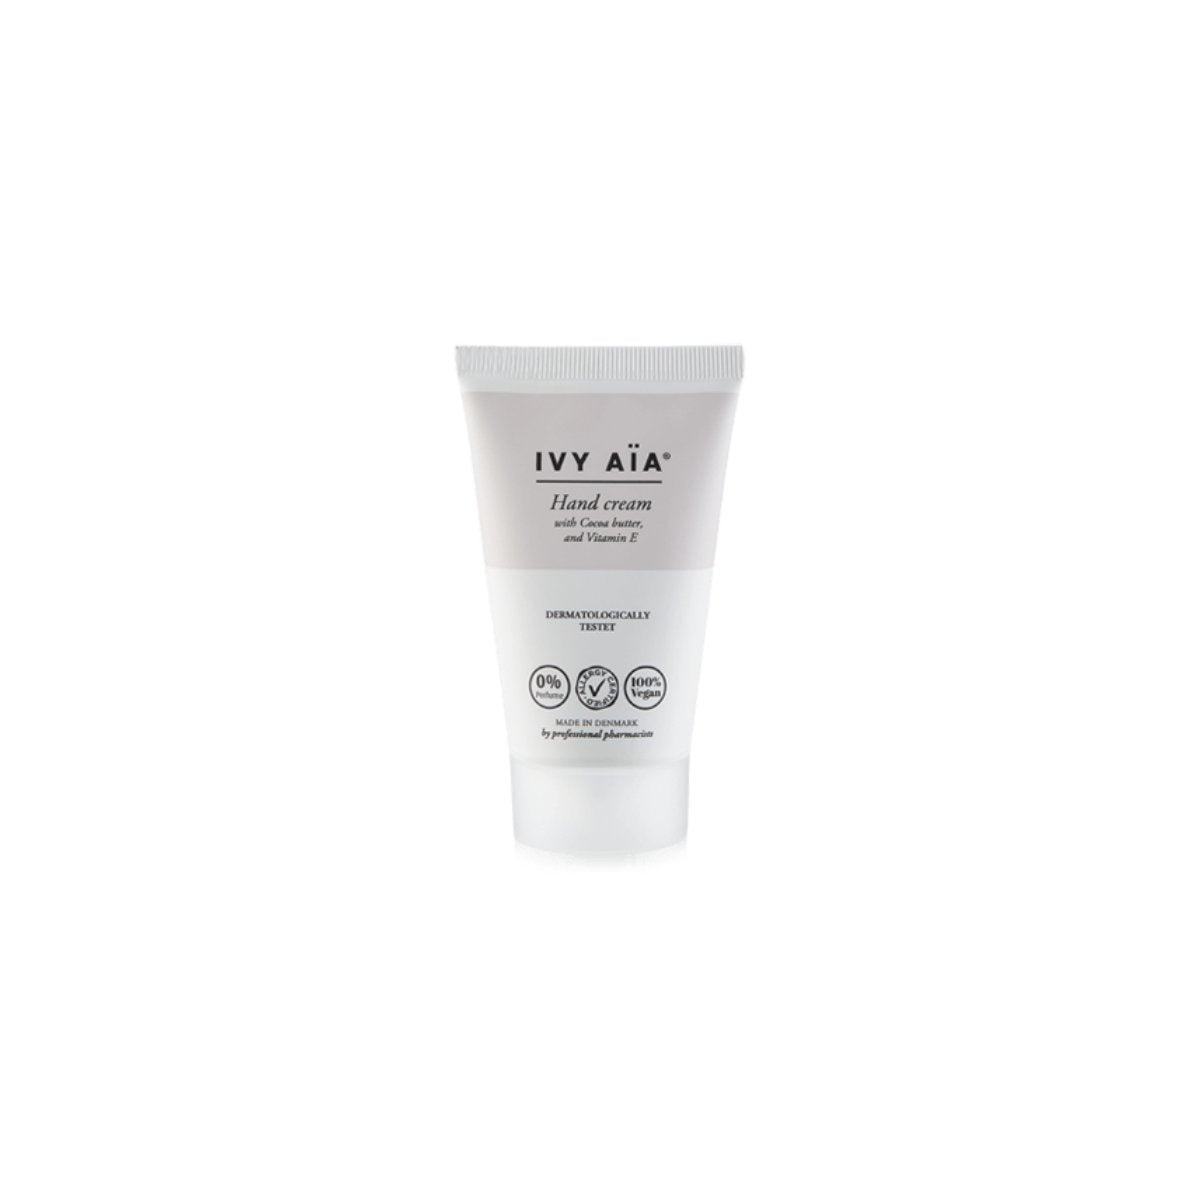 IVY AïA Hand Cream with Protective Formular - Nulallergi.dk